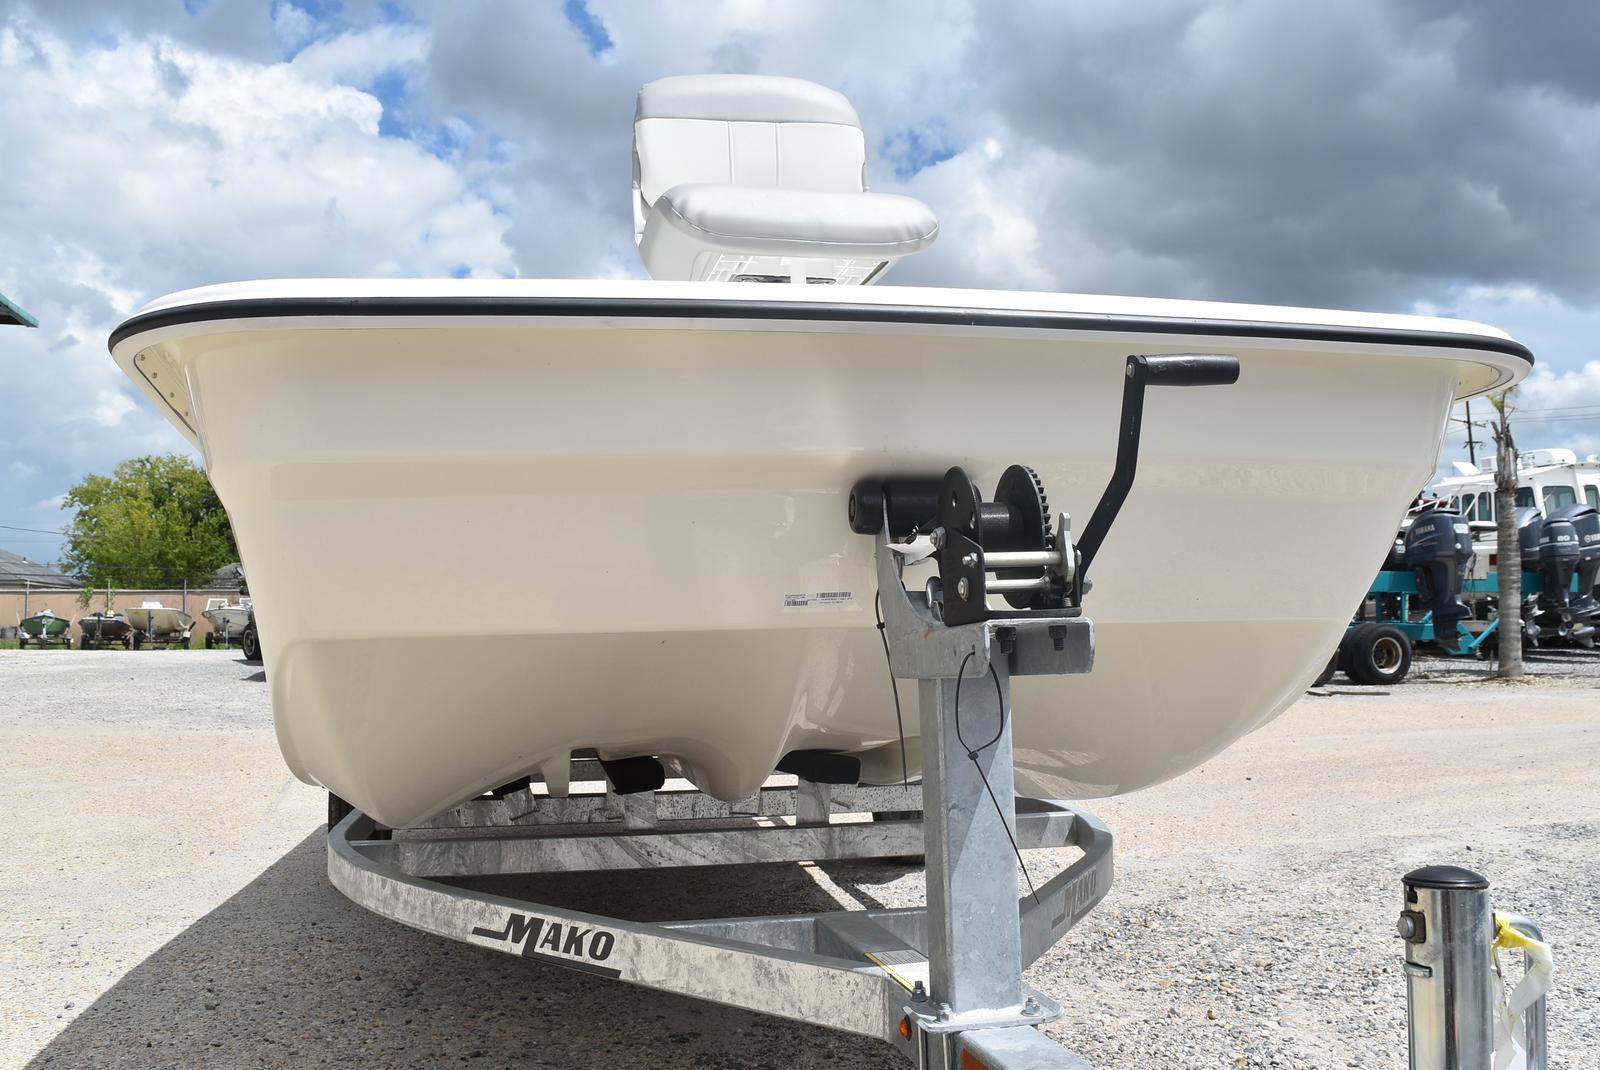 2020 Mako boat for sale, model of the boat is Pro Skiff 17, 75 ELPT & Image # 337 of 702